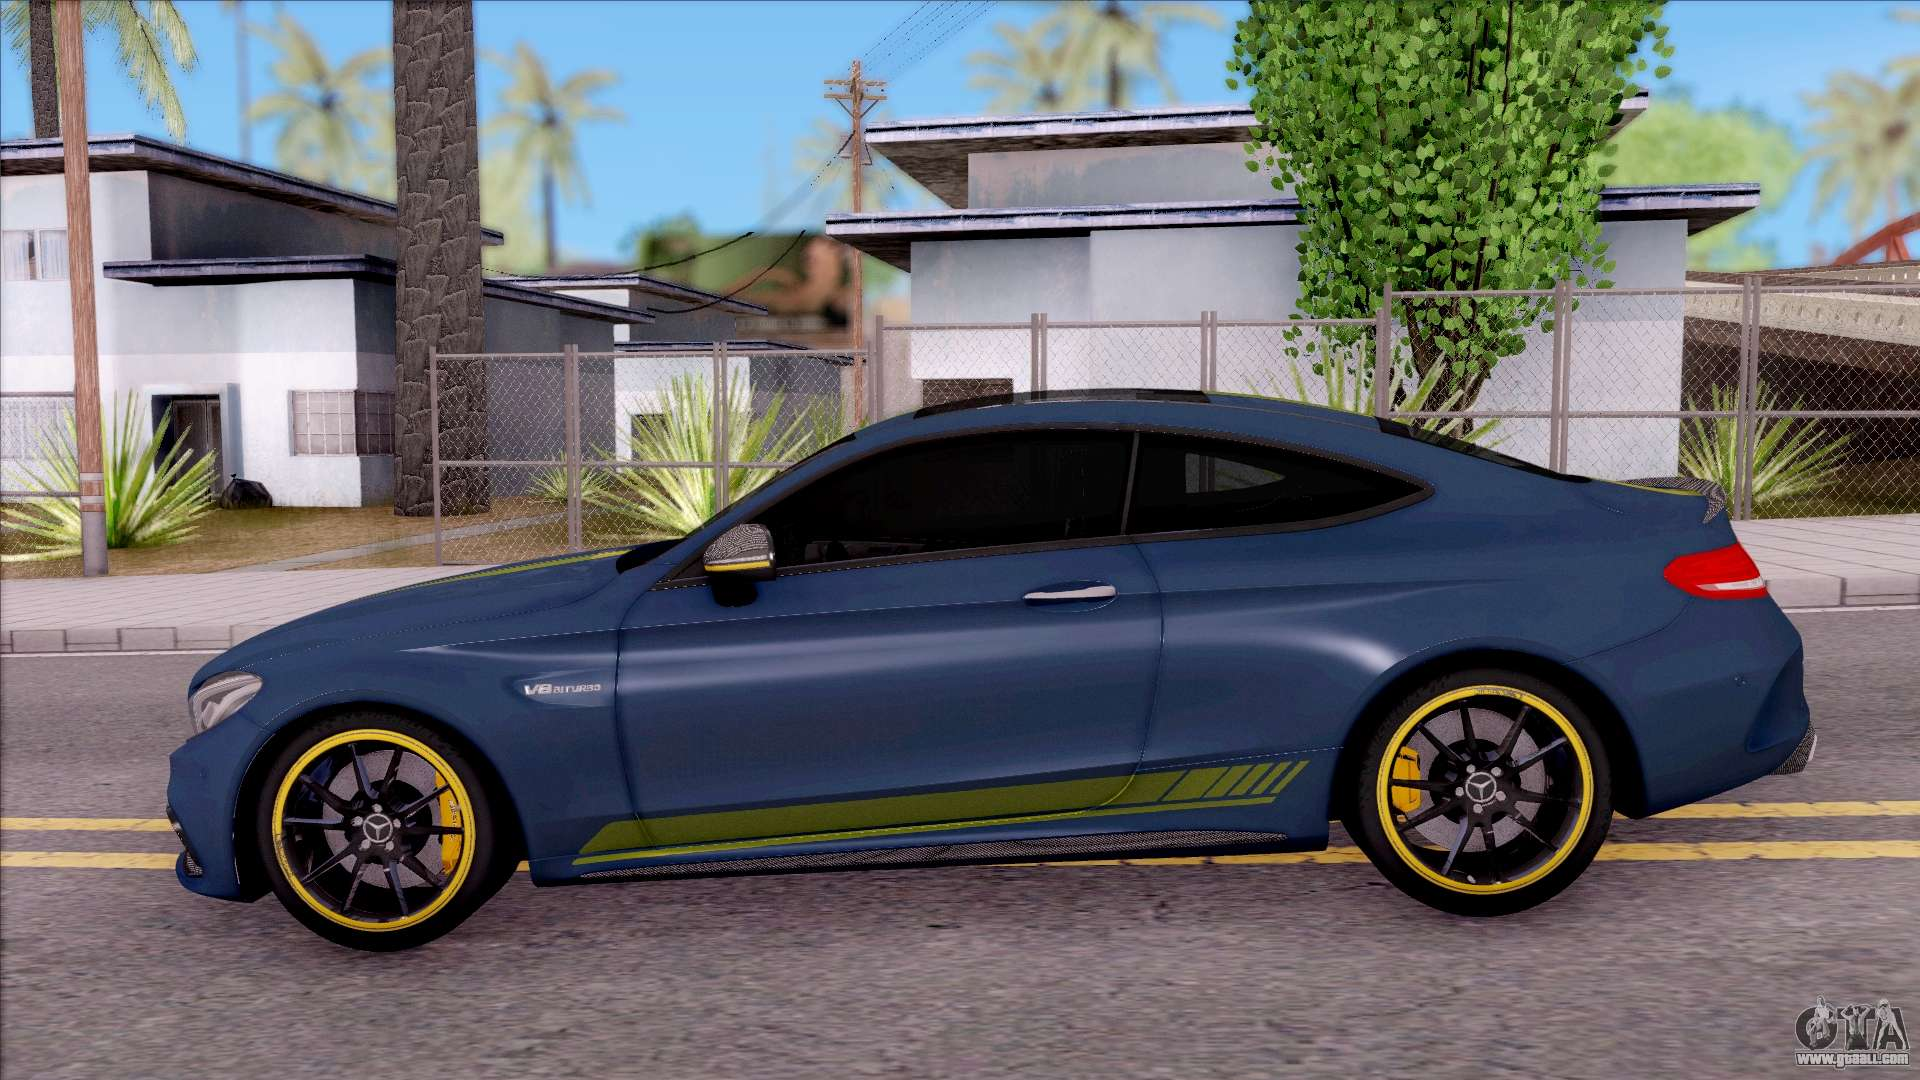 Mercedes Benz C63s Amg Coupe 2016 V3 For Gta San Andreas